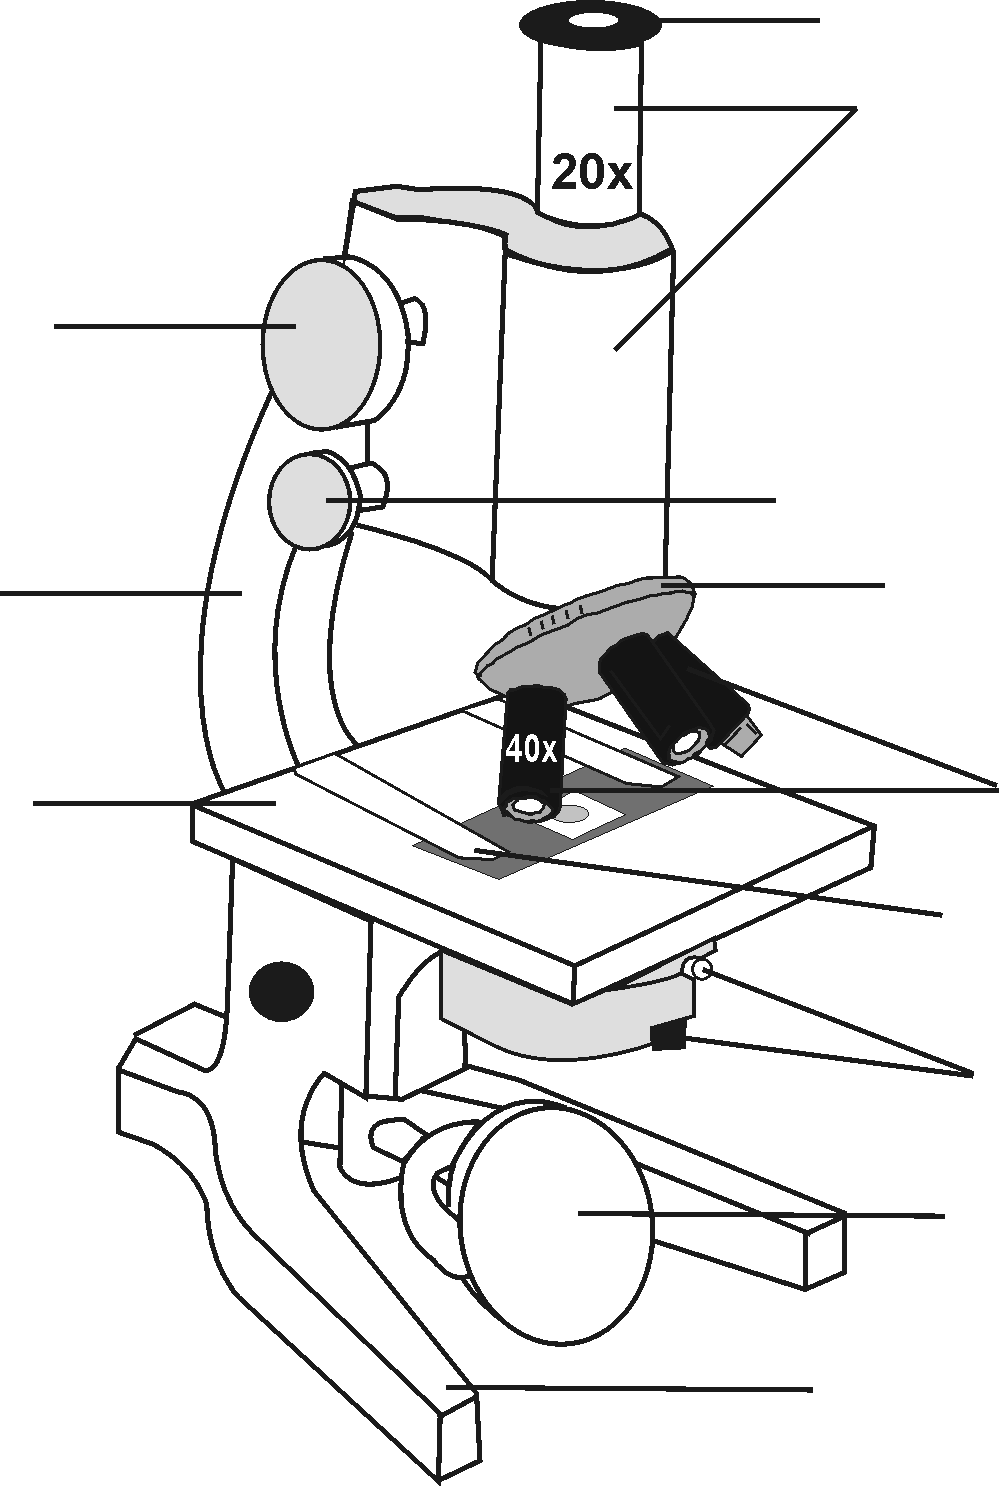 compound microscope diagram and functions 1986 chevy truck power window wiring free drawing, download clip art, art on clipart library